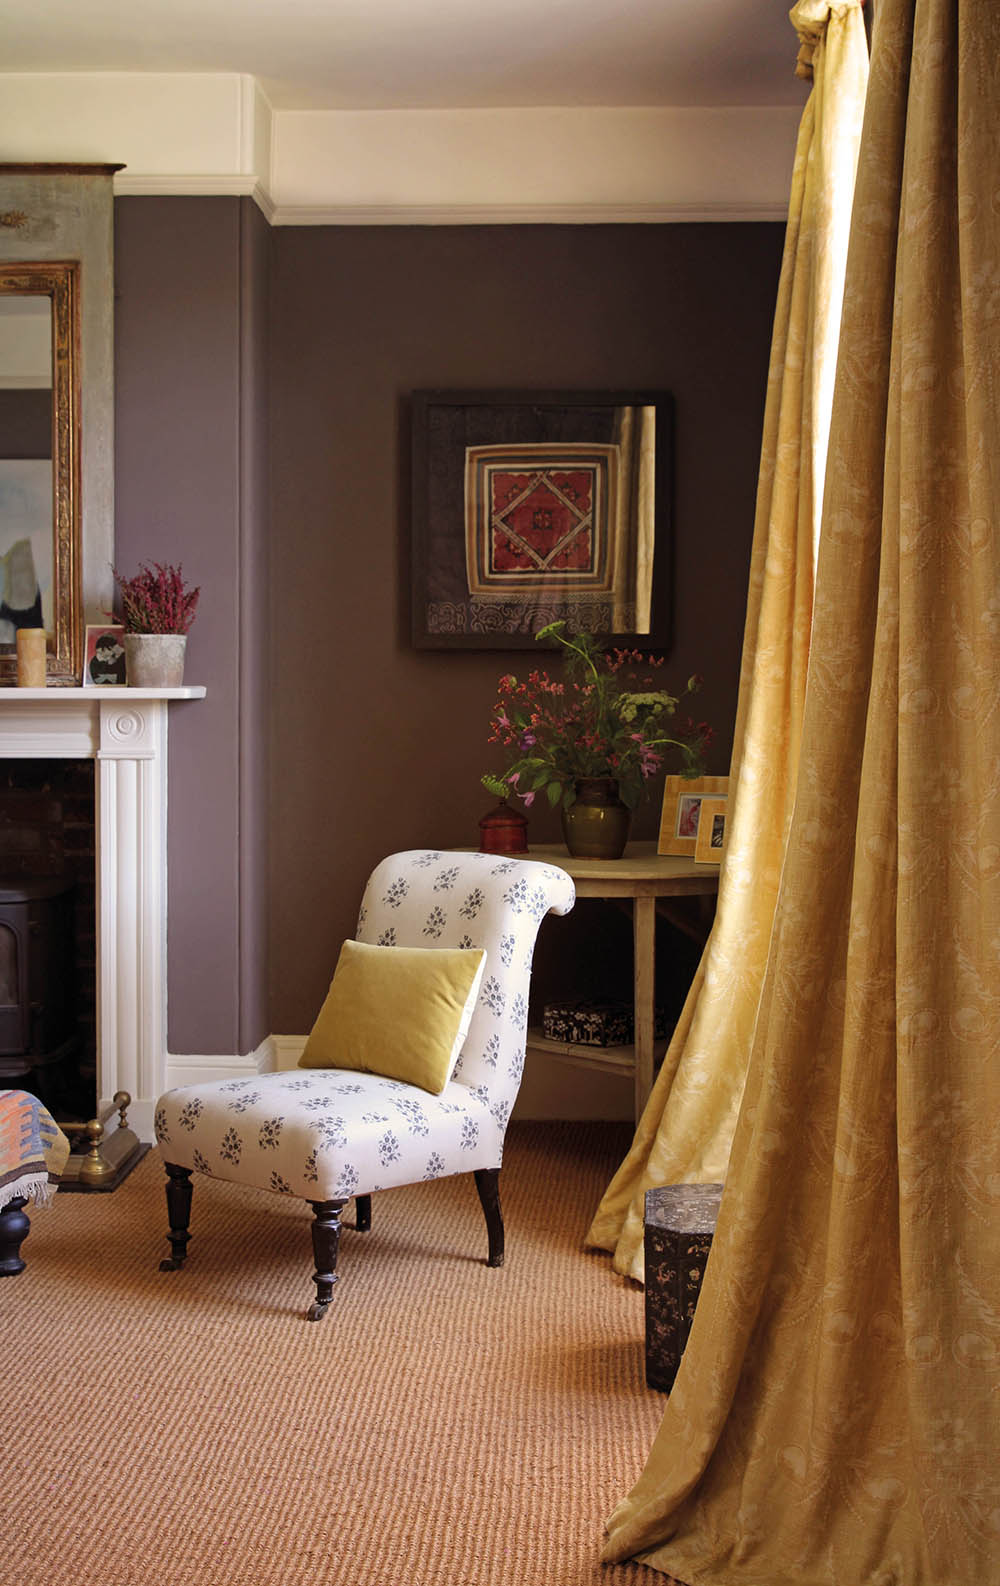 Josephine Yellow Curtain and Agnes Charcoal Chair